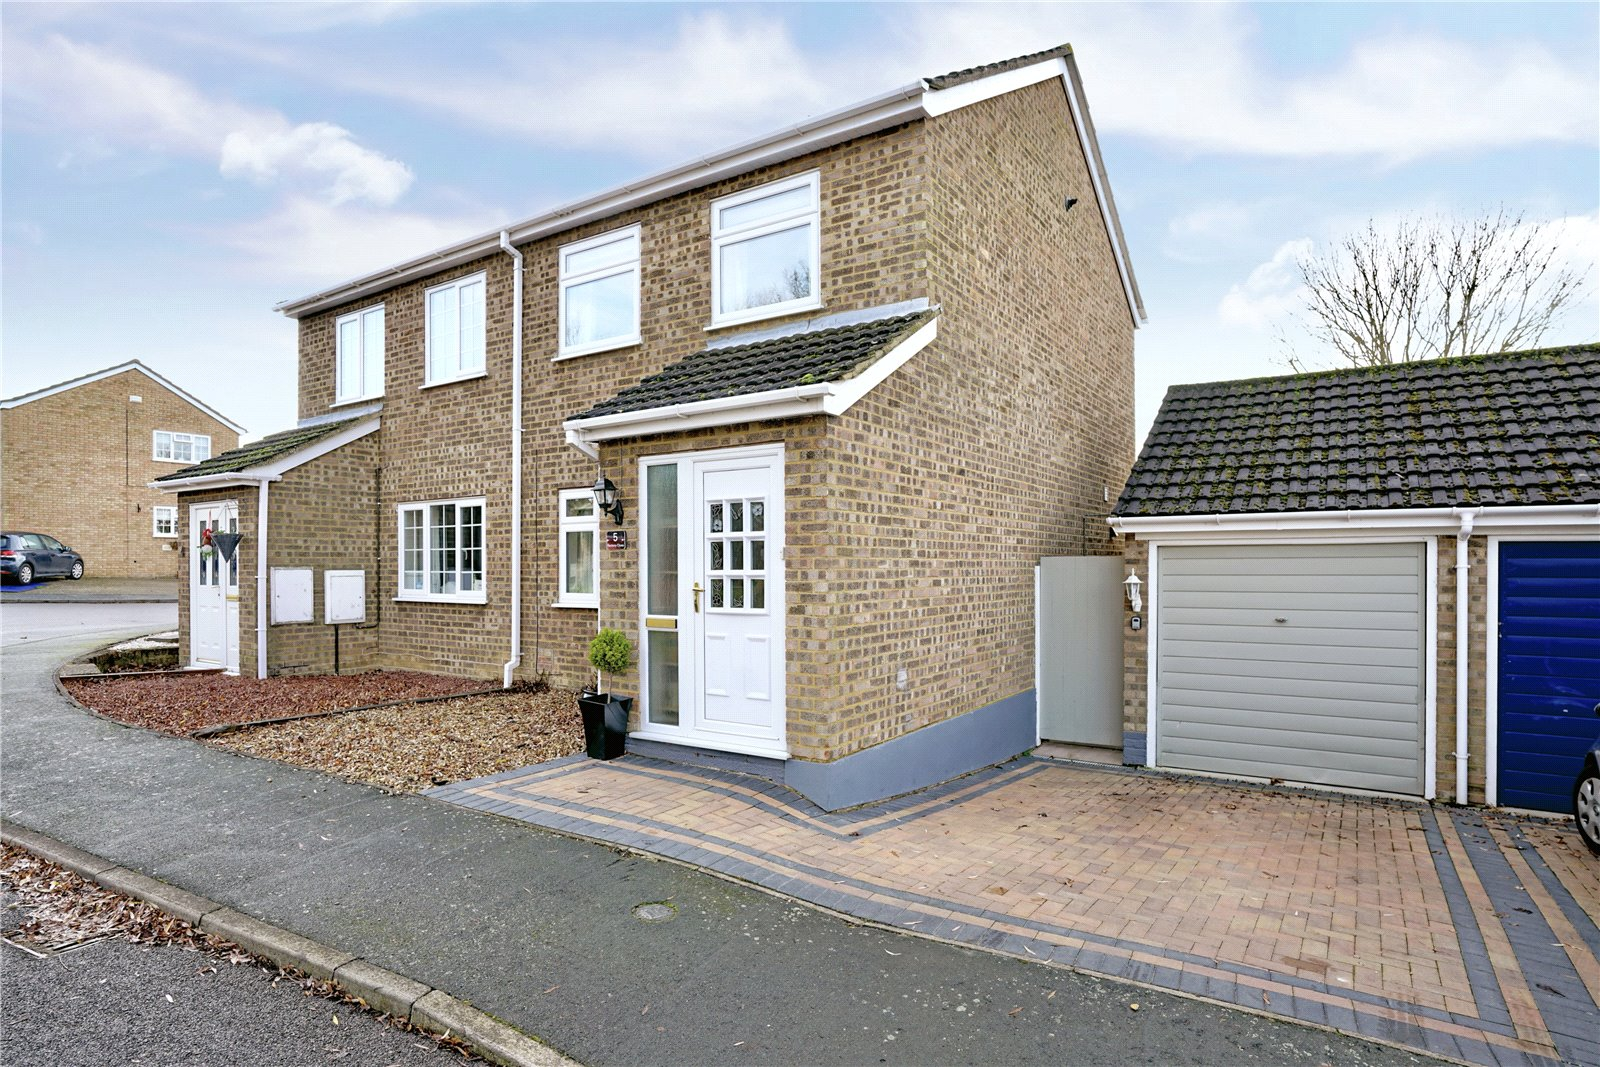 2 bed house for sale in Great Paxton, PE1